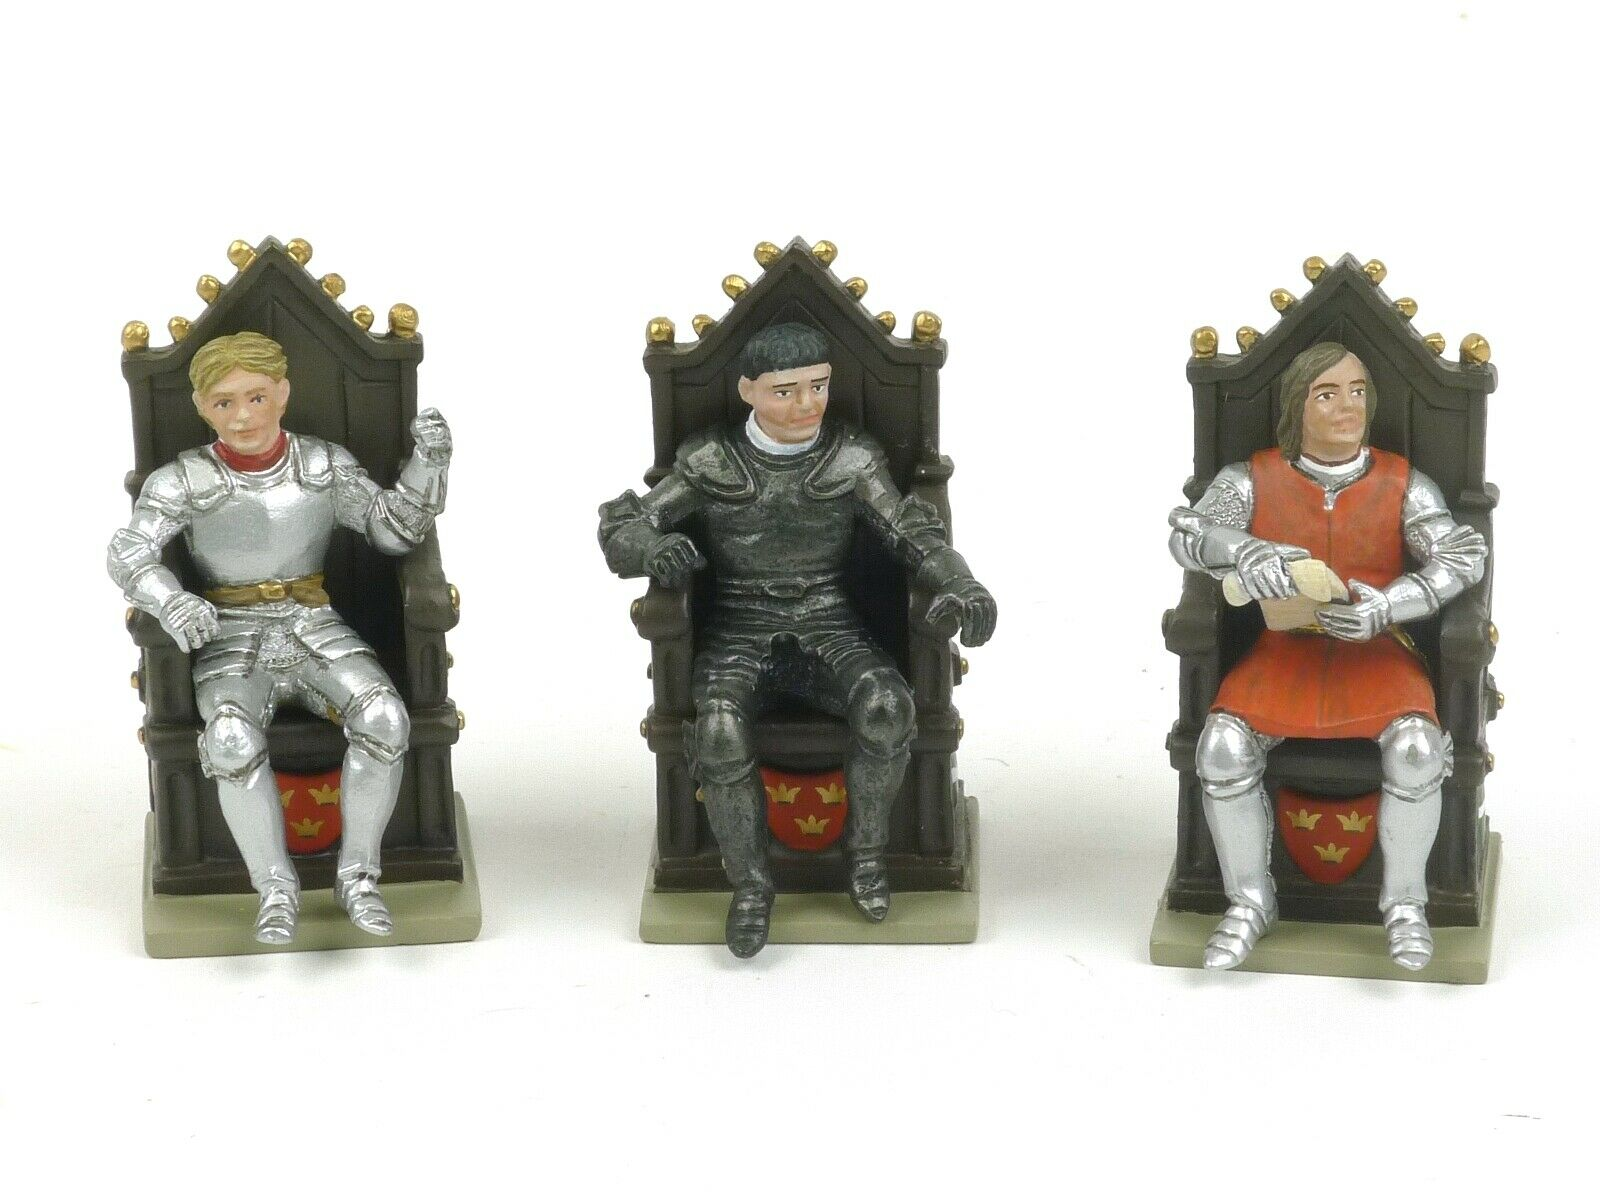 W Britain 41139 Sirs Percivale, Tristan And Mordred With Thrones